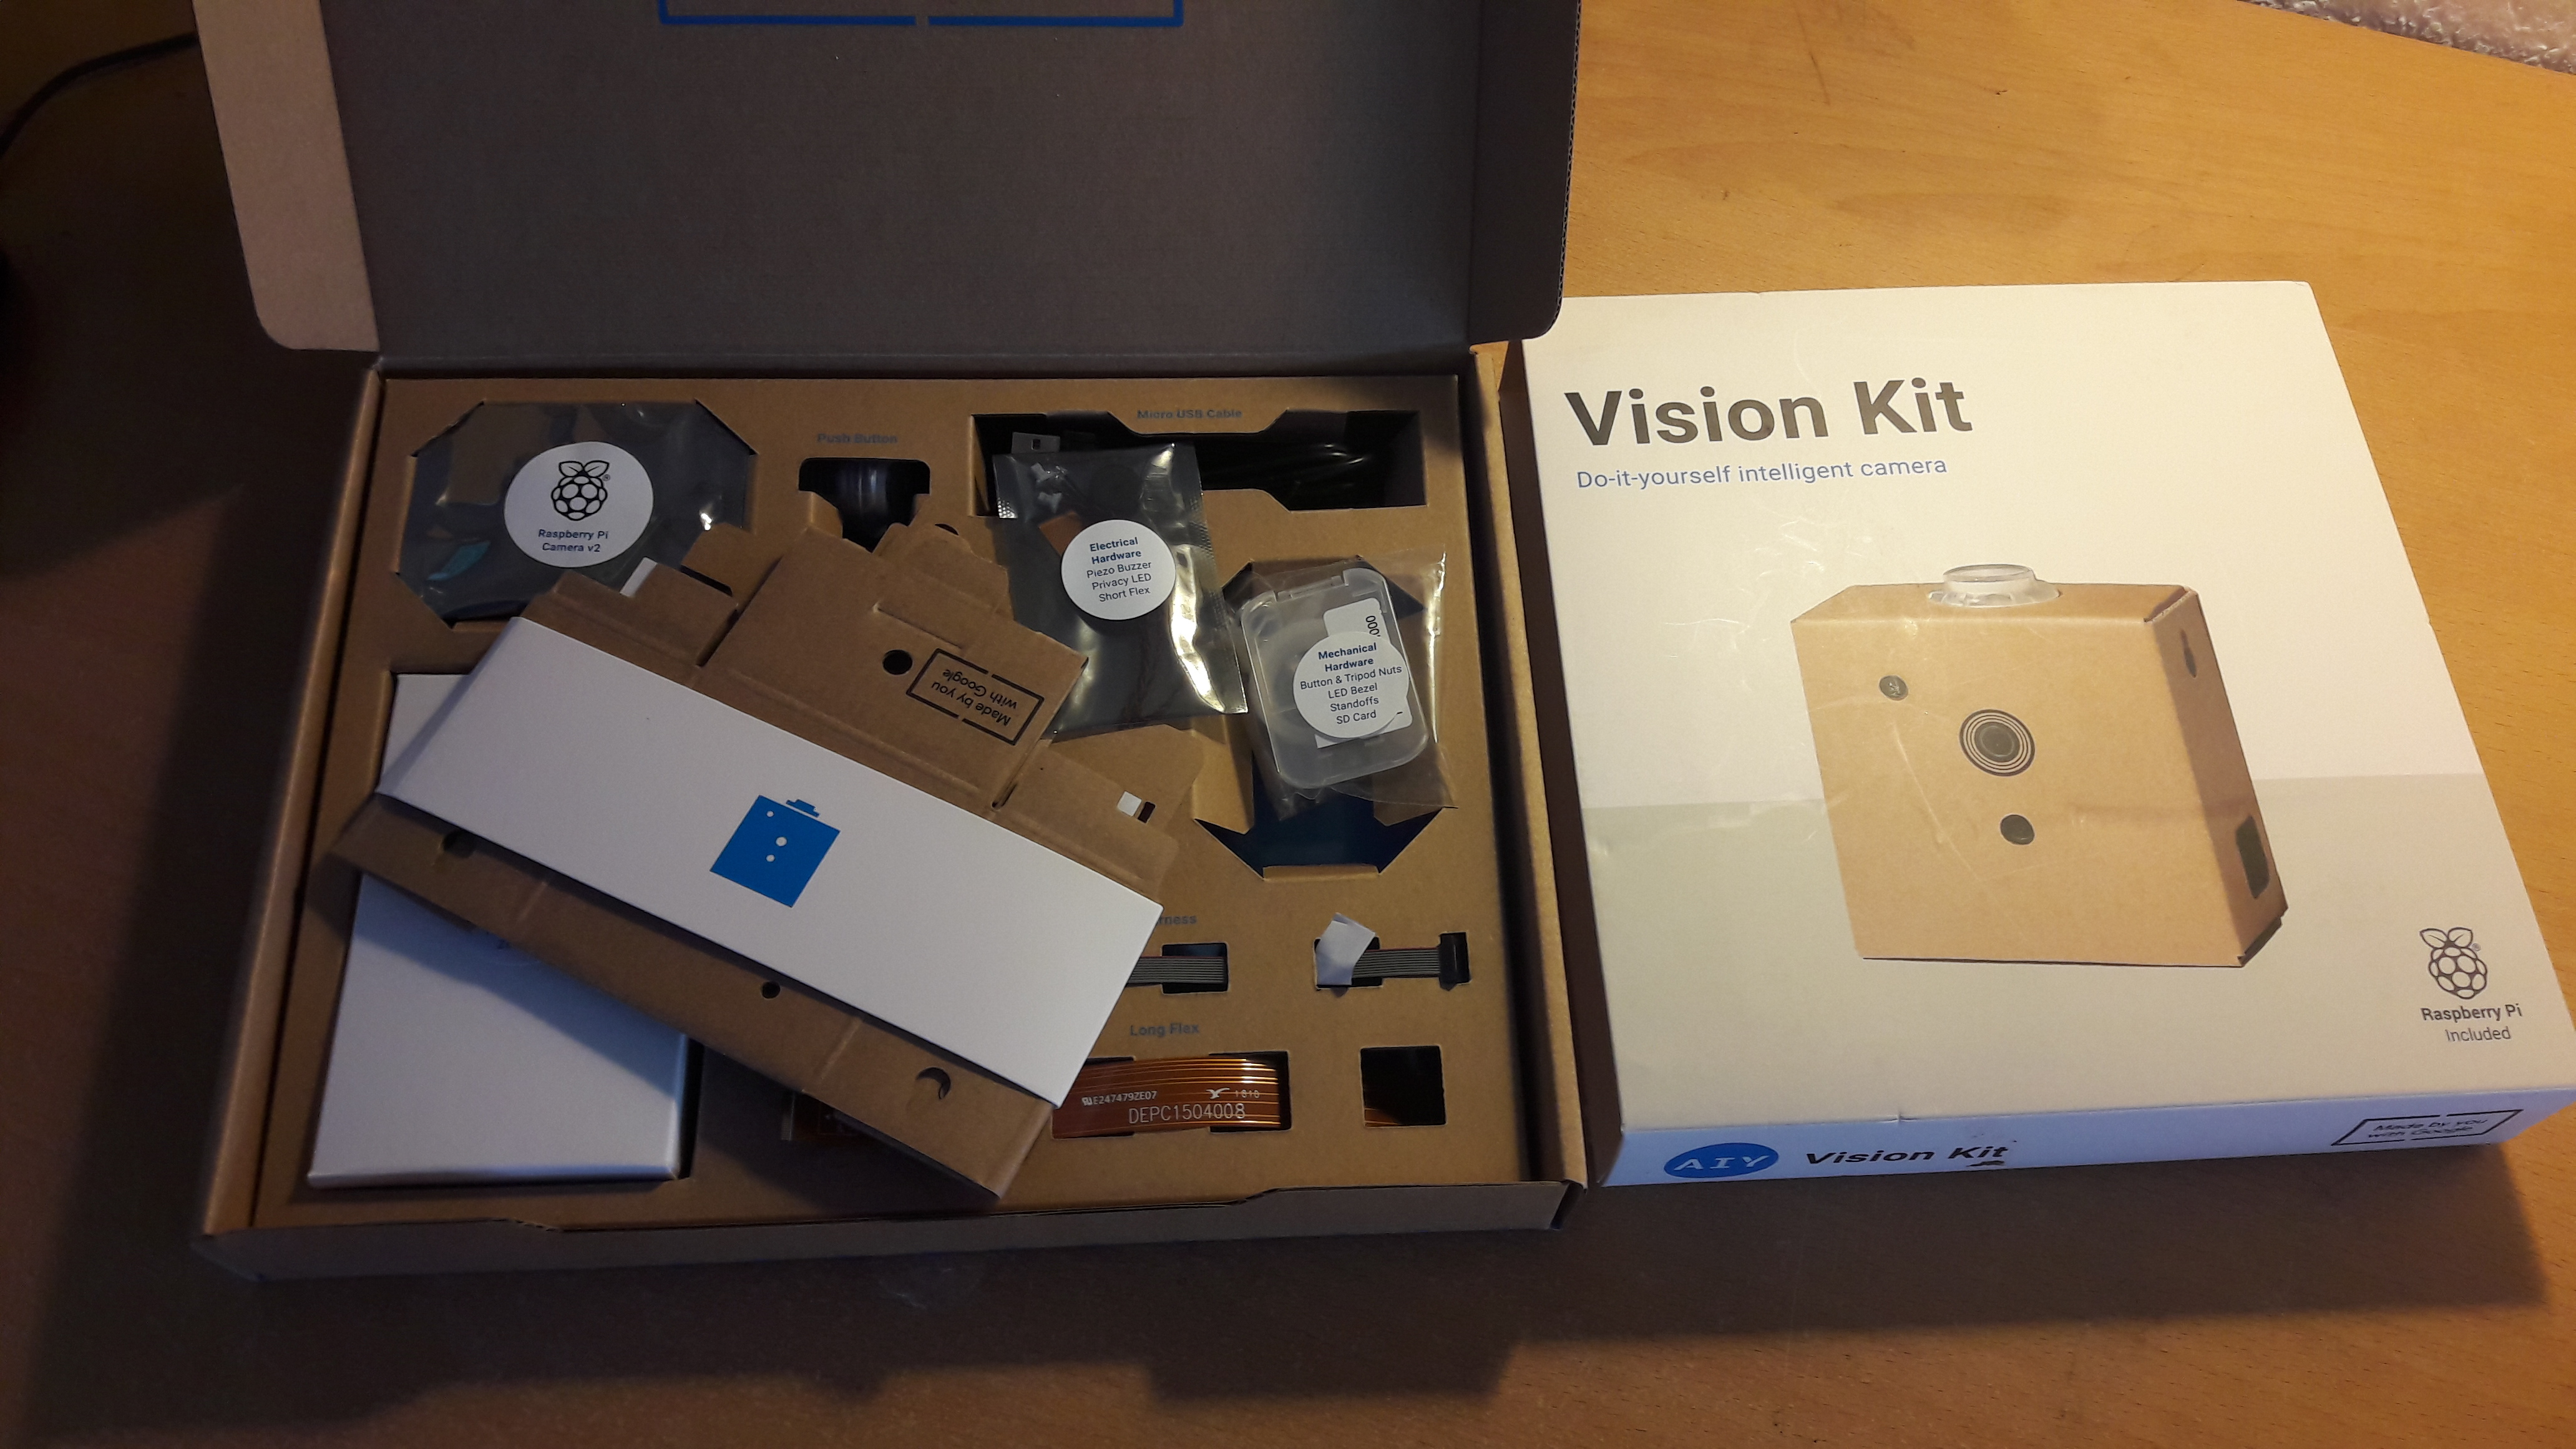 Vision Kit unboxed